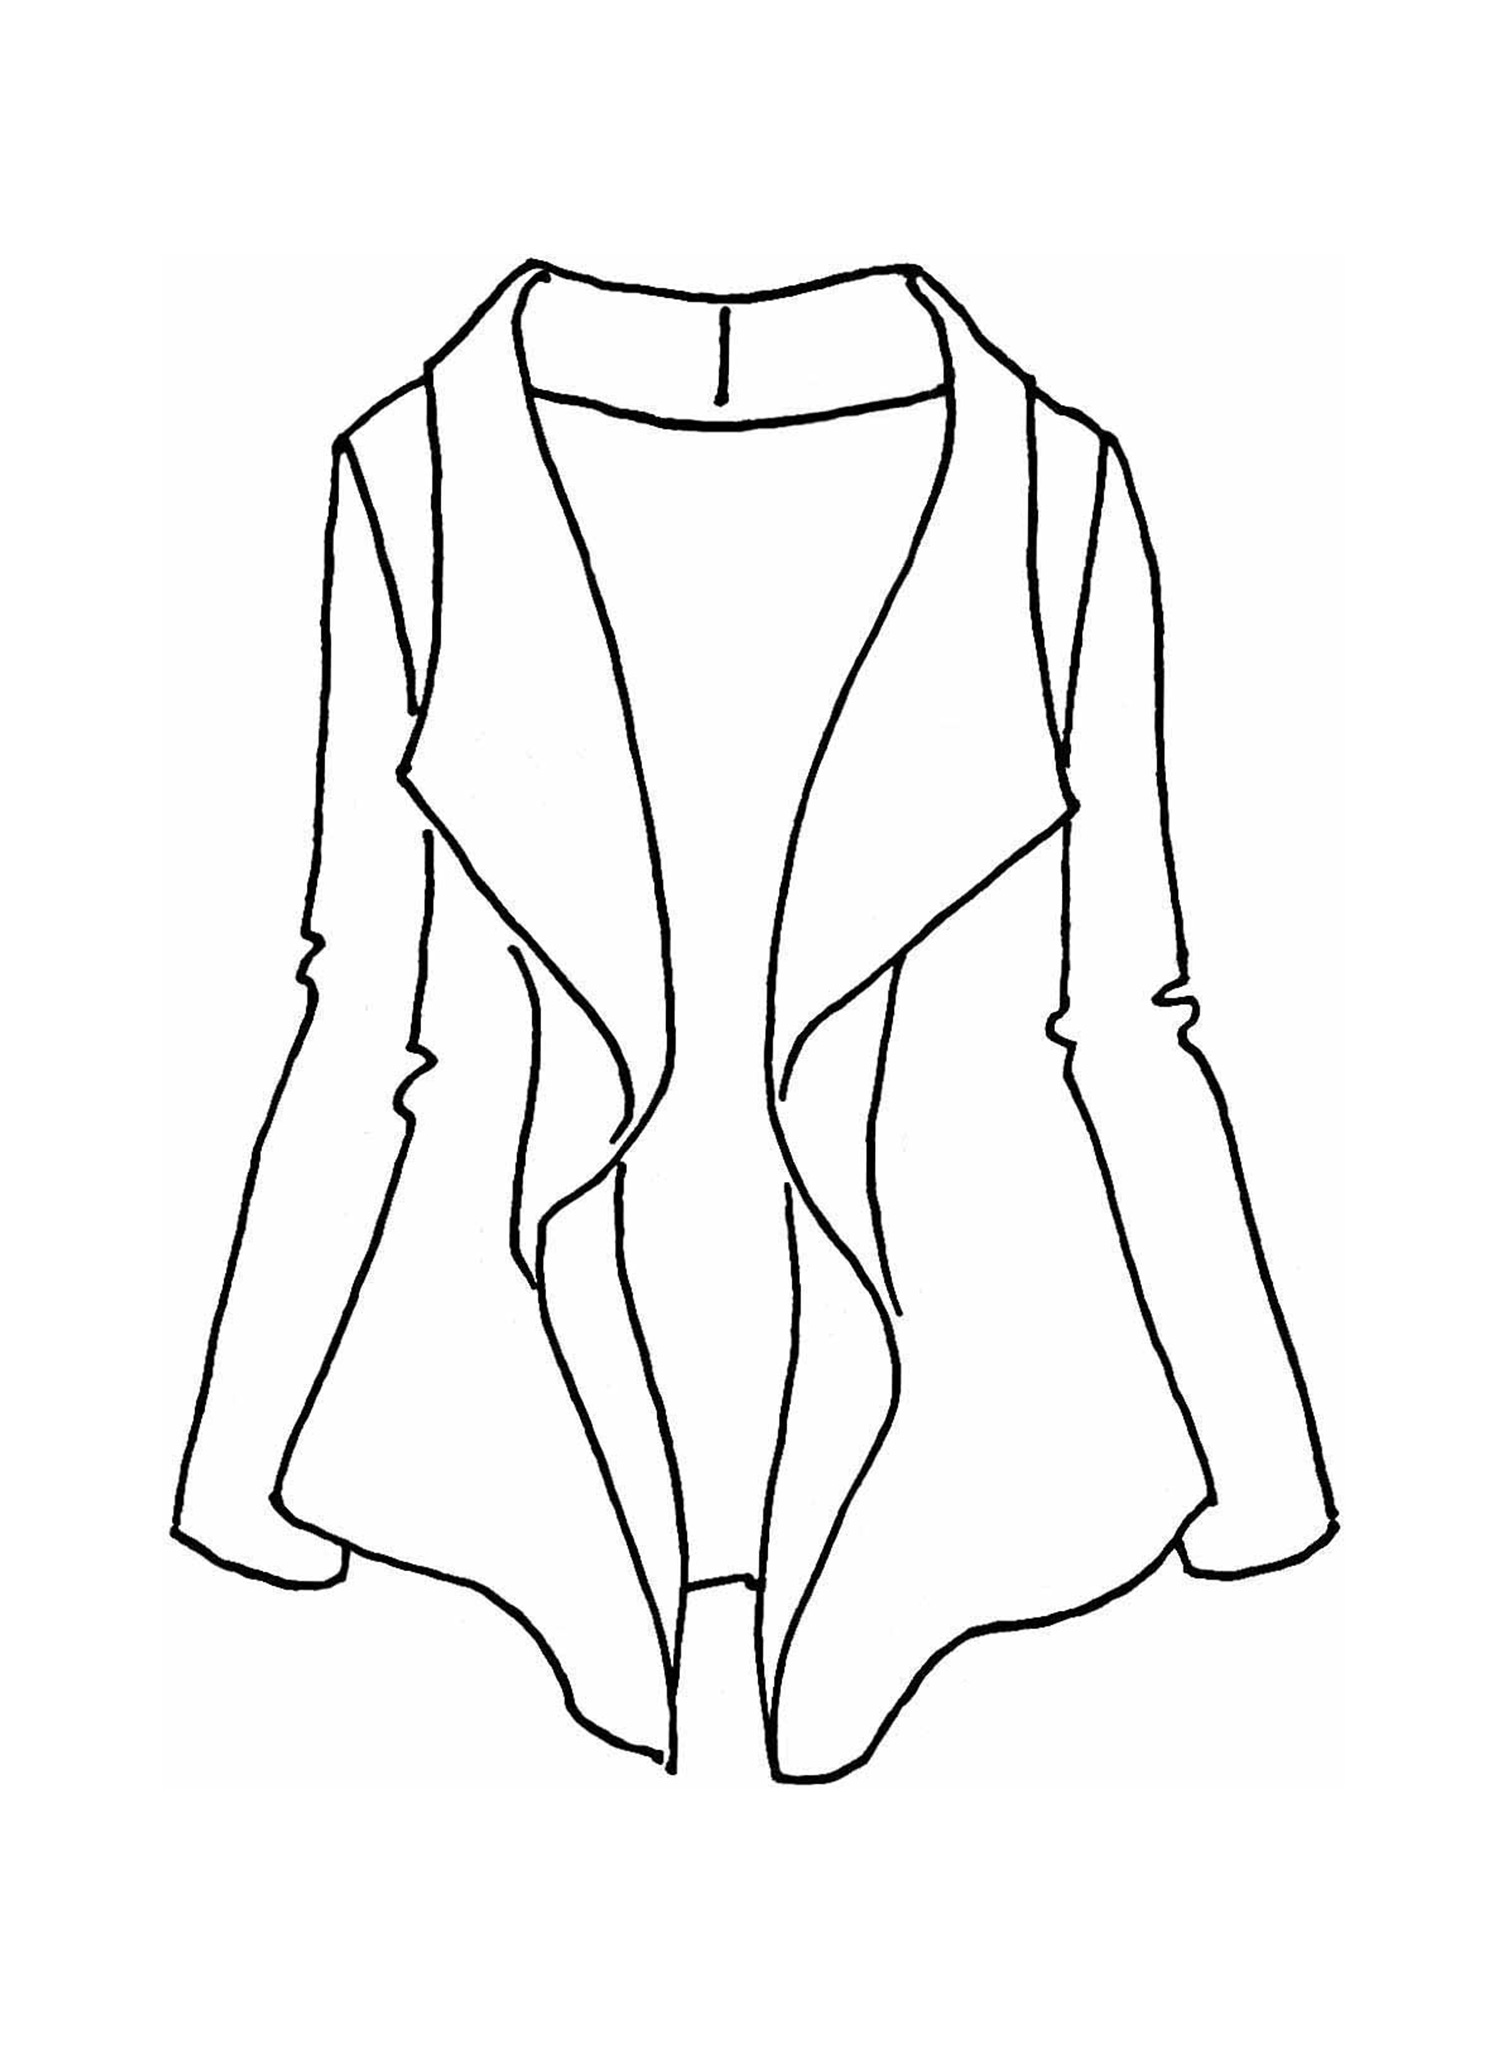 Draping Caper sketch image